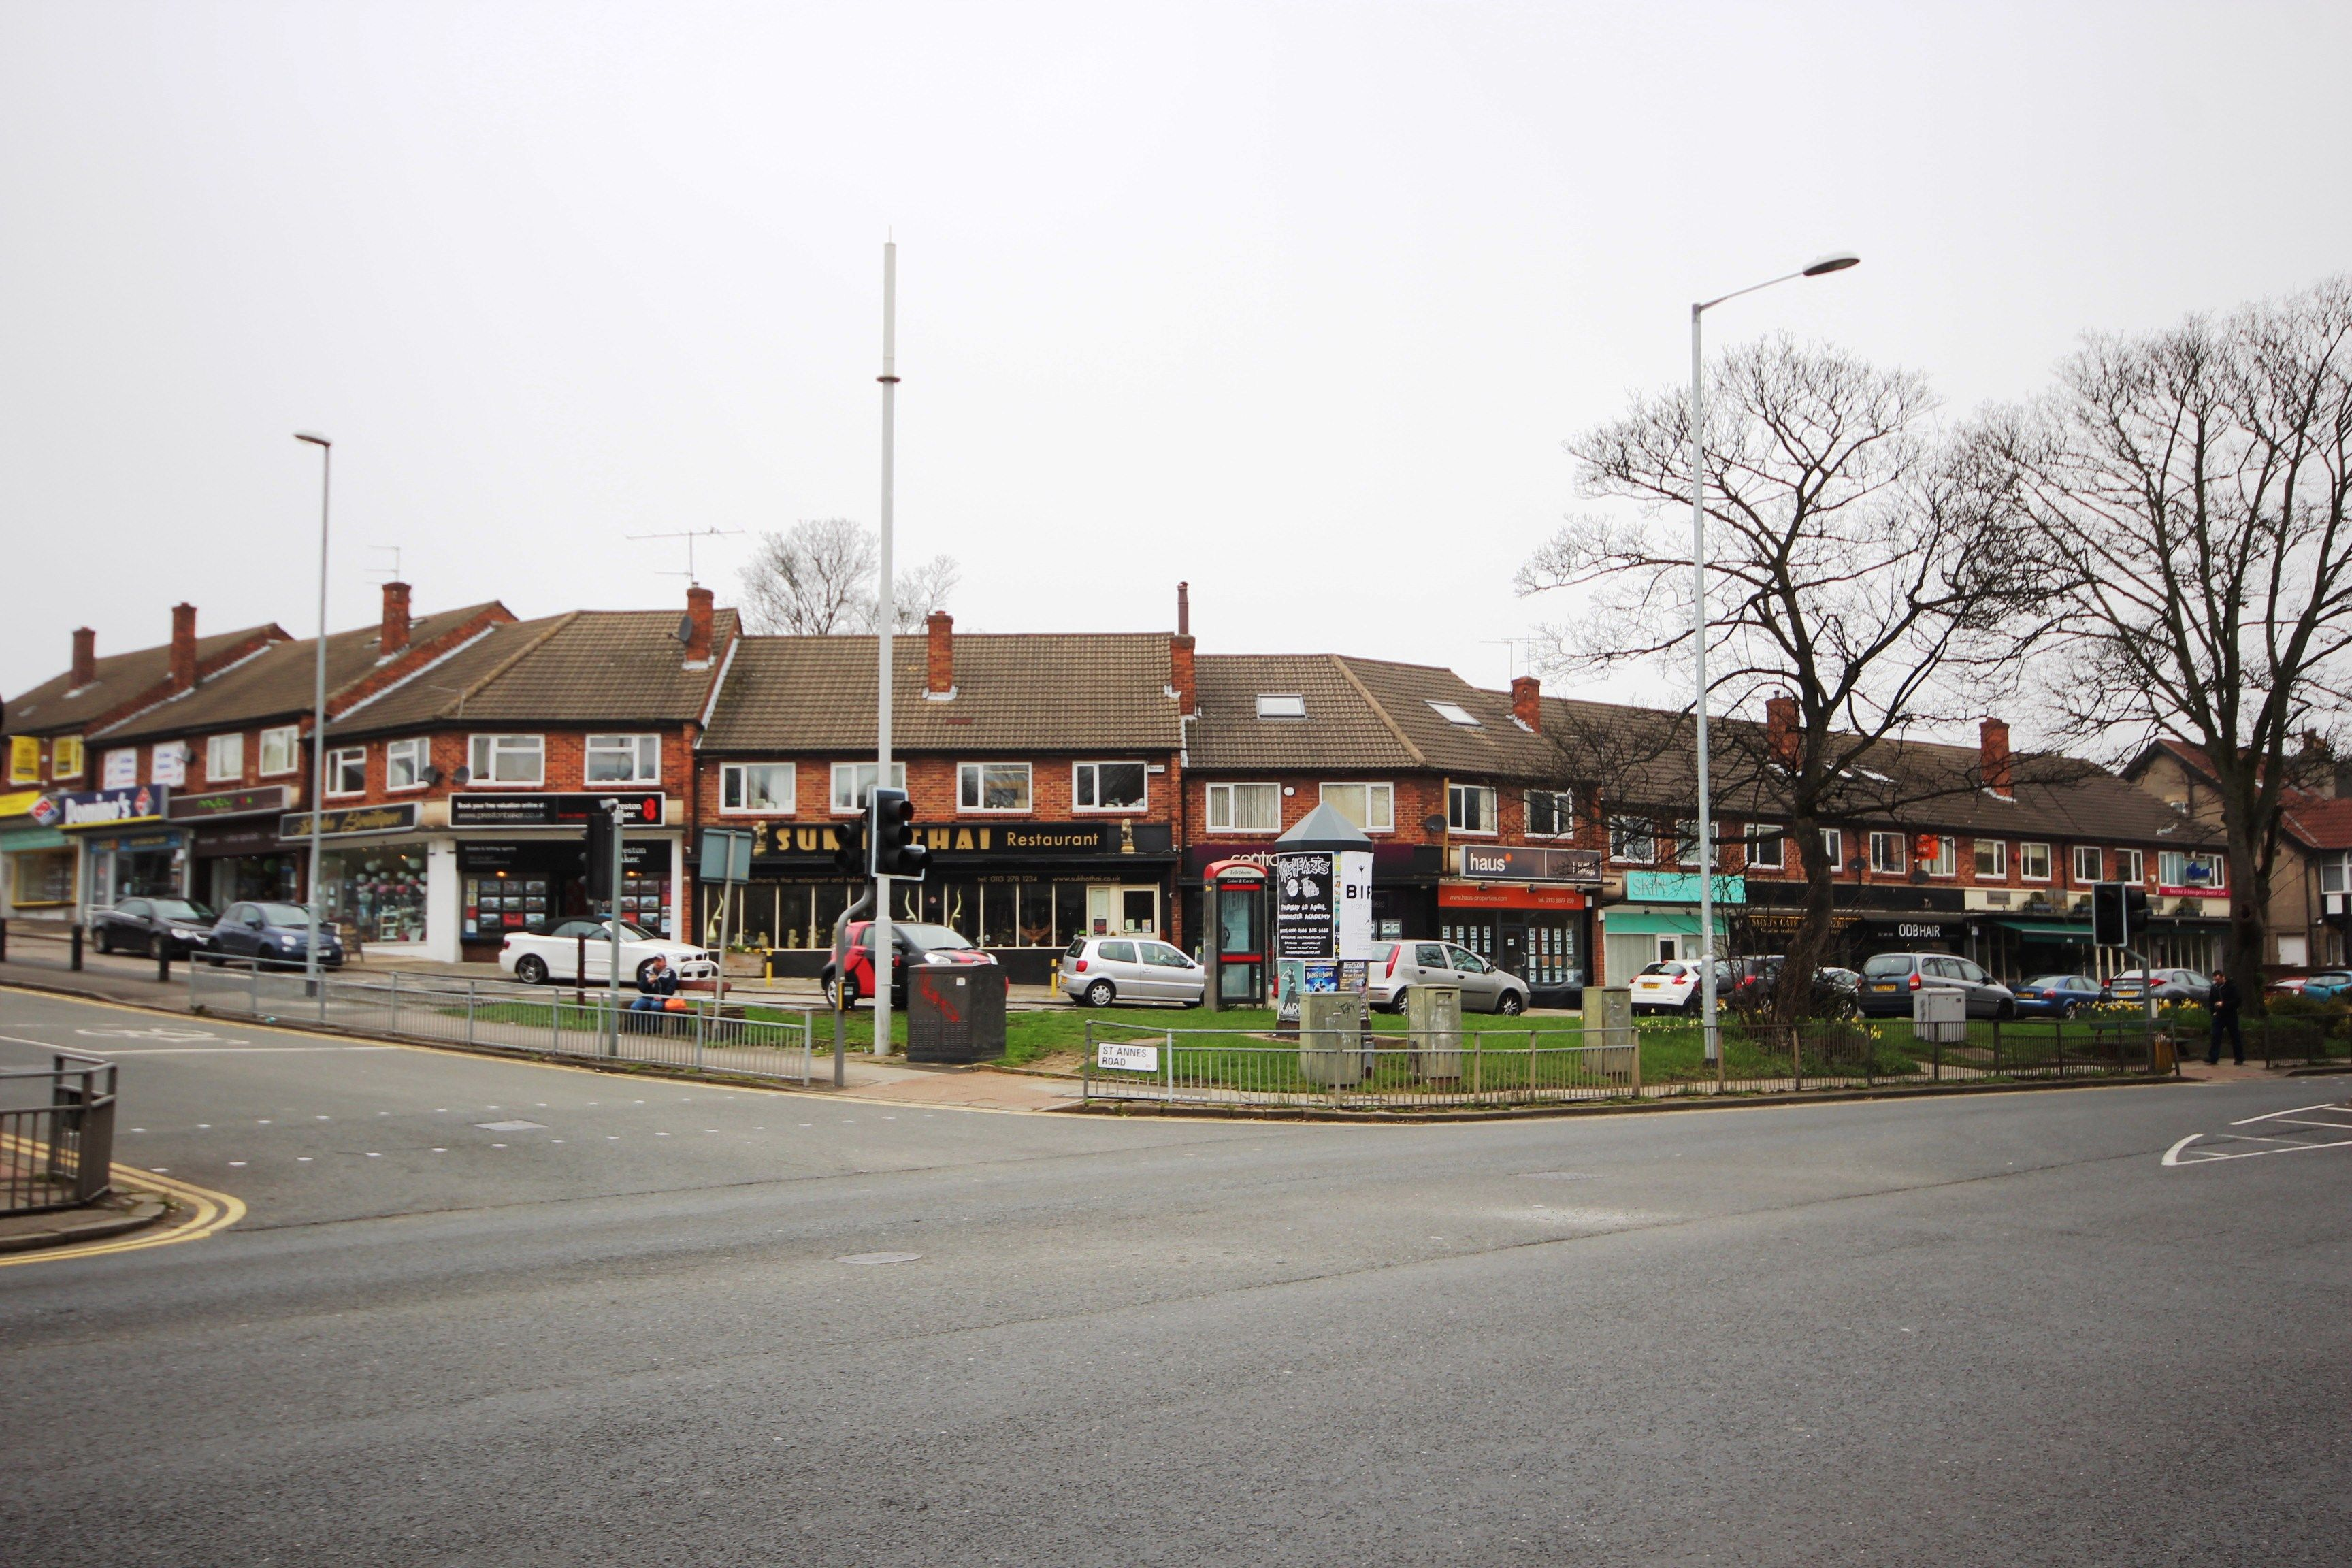 The parade of shops on St Annes Road and Otley Road.